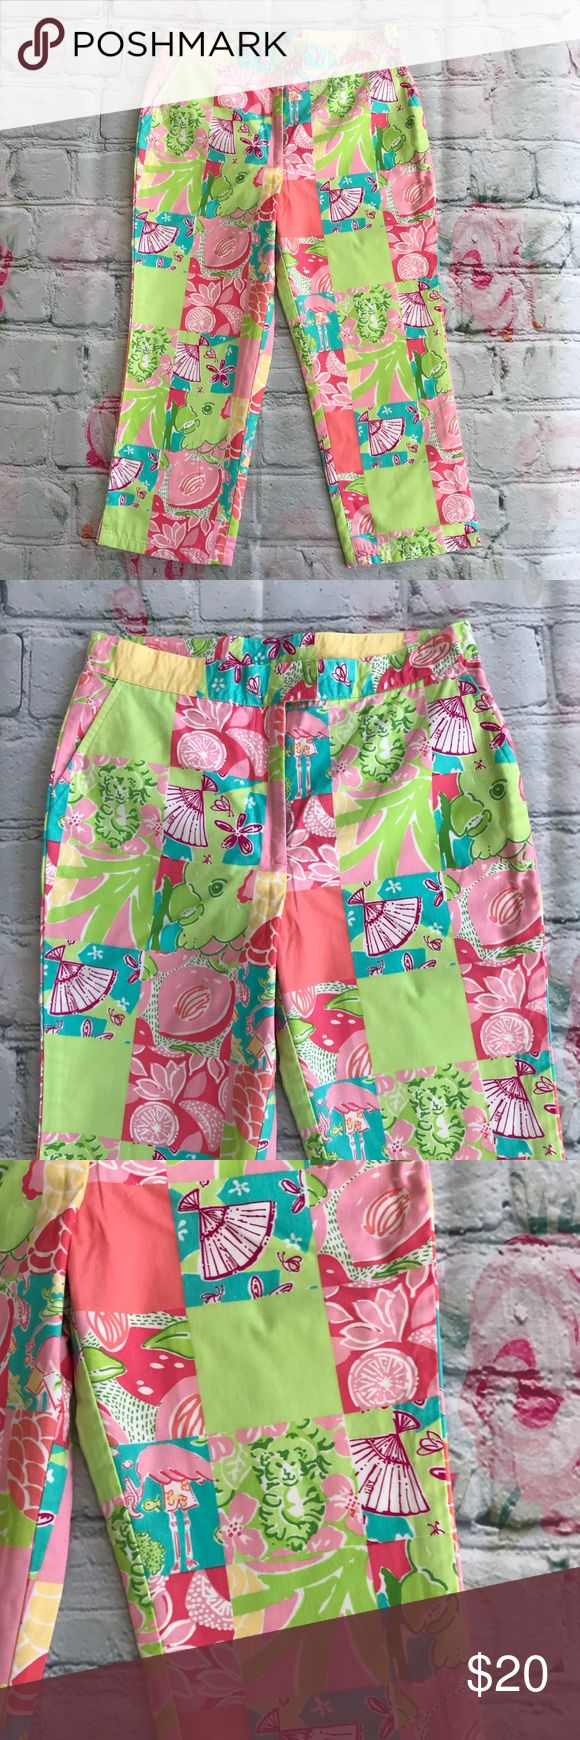 Lilly Pulitzer Patchwork Capris White Label SZ 10 Super cute capris from Lilly Pulitzer, white tag, Size 10 Girls. Fabulous Patchwork print in pretty pastel colors. Pockets at hips, concealed zipper, fully lined. 100% cotton(lining is a poly/cotton blend) machine washable.   Laying flat measurements;  12 1/3 inches across waist  Overall length 26 1/2 inches Lilly Pulitzer Bottoms Casual